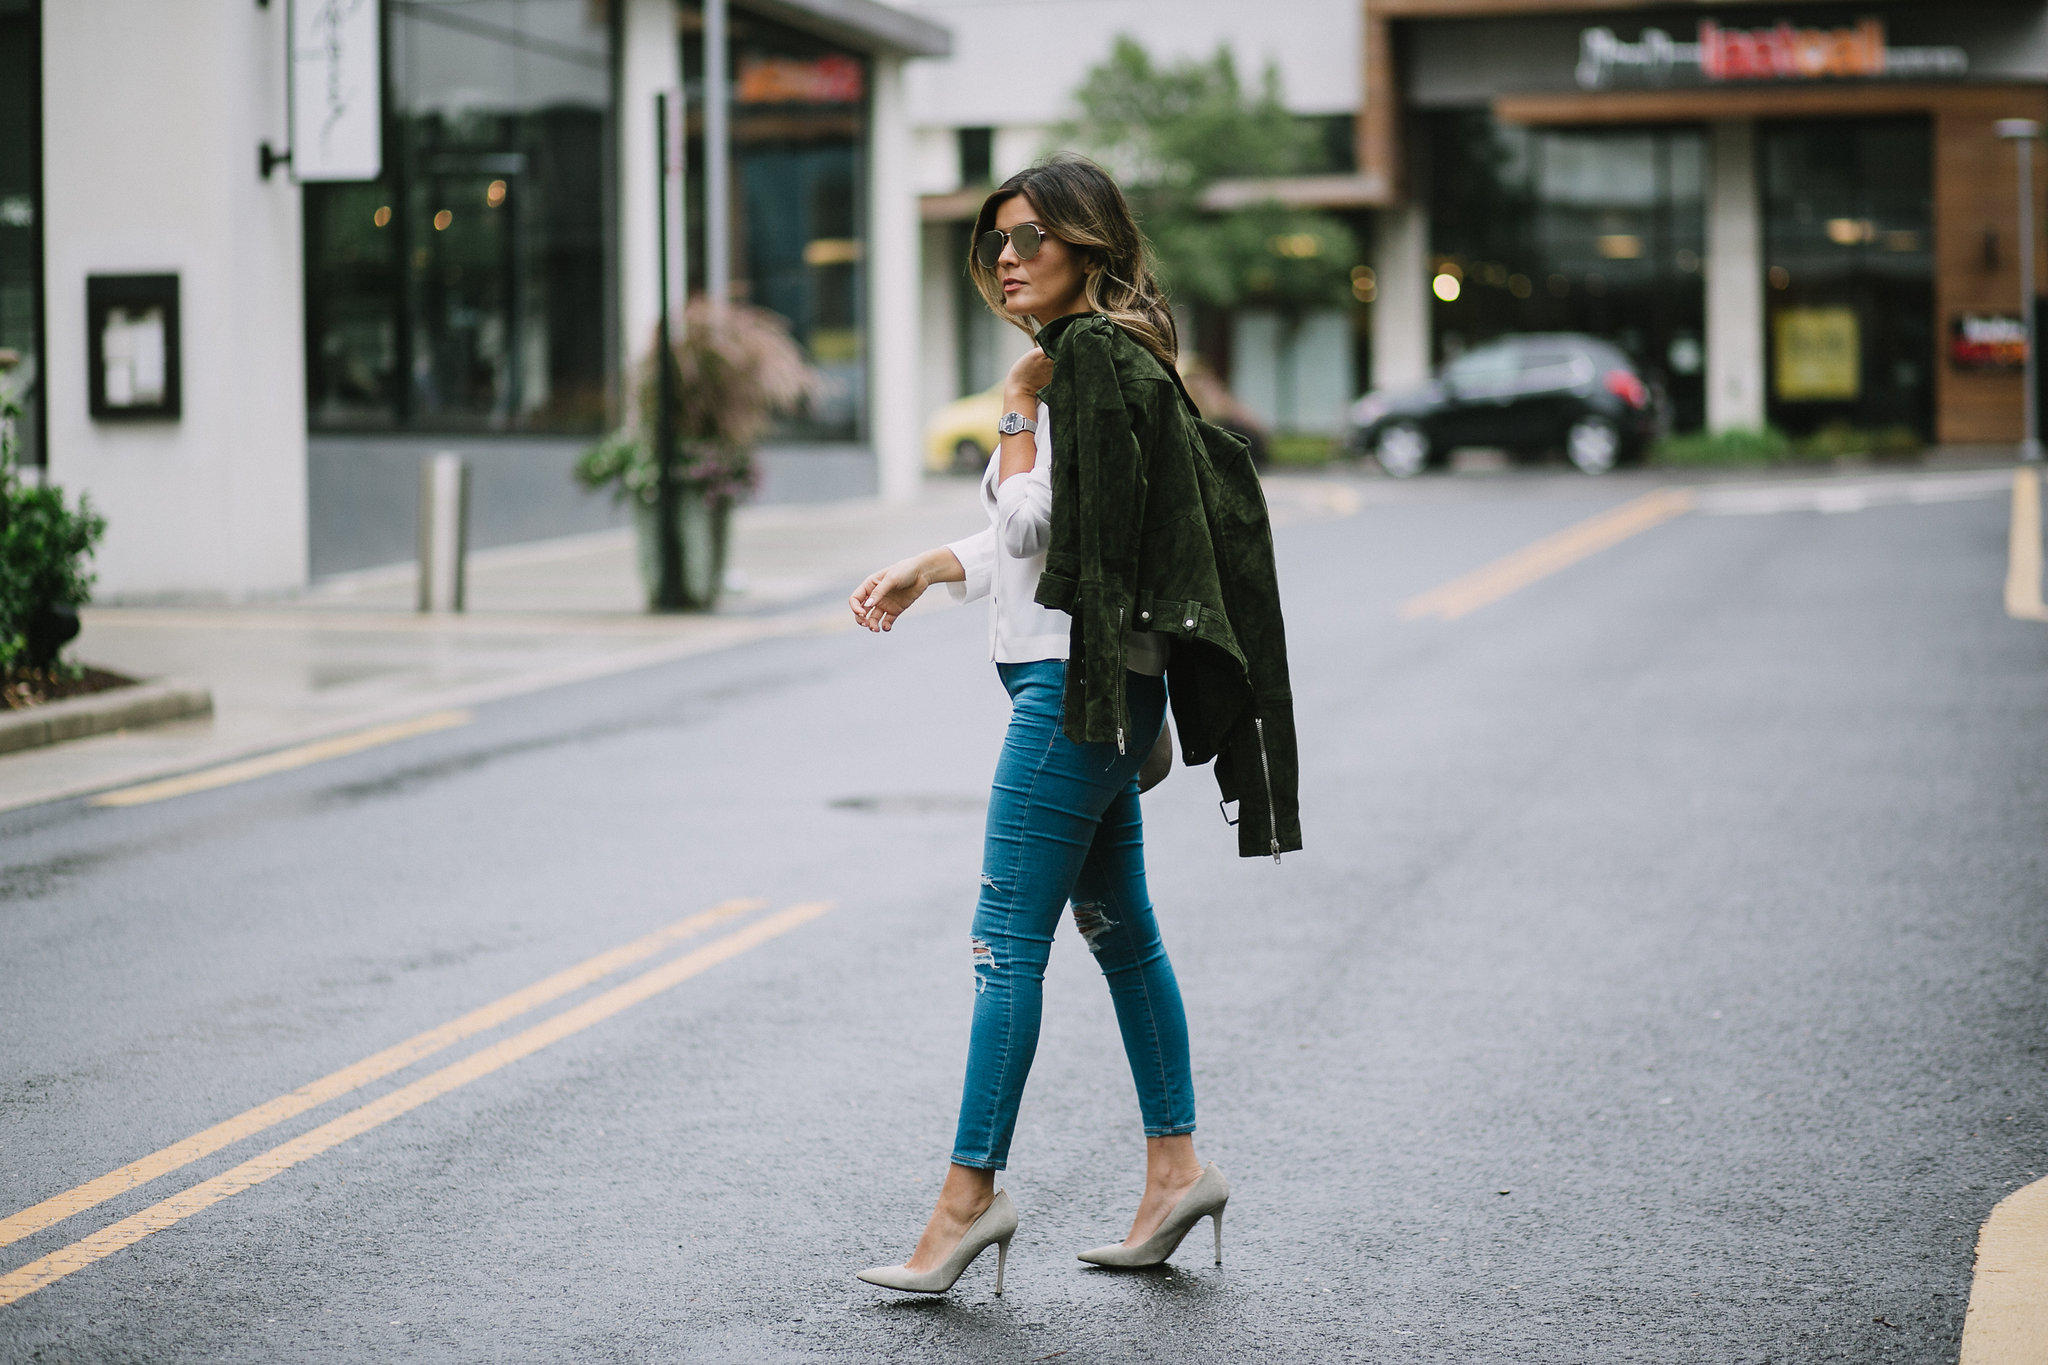 Style MBA wears Nordstrom Suede Moto Jacket and Topshop Jeans